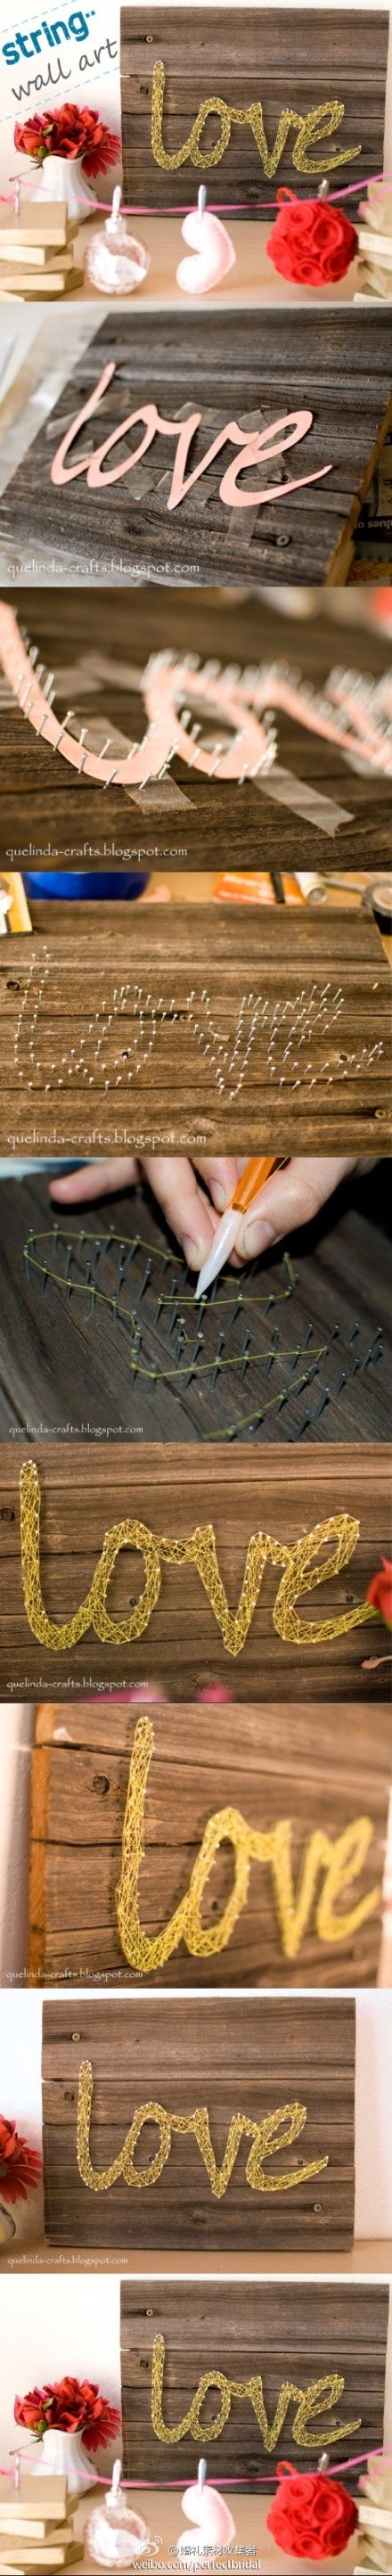 String letters- use nails with a stencil